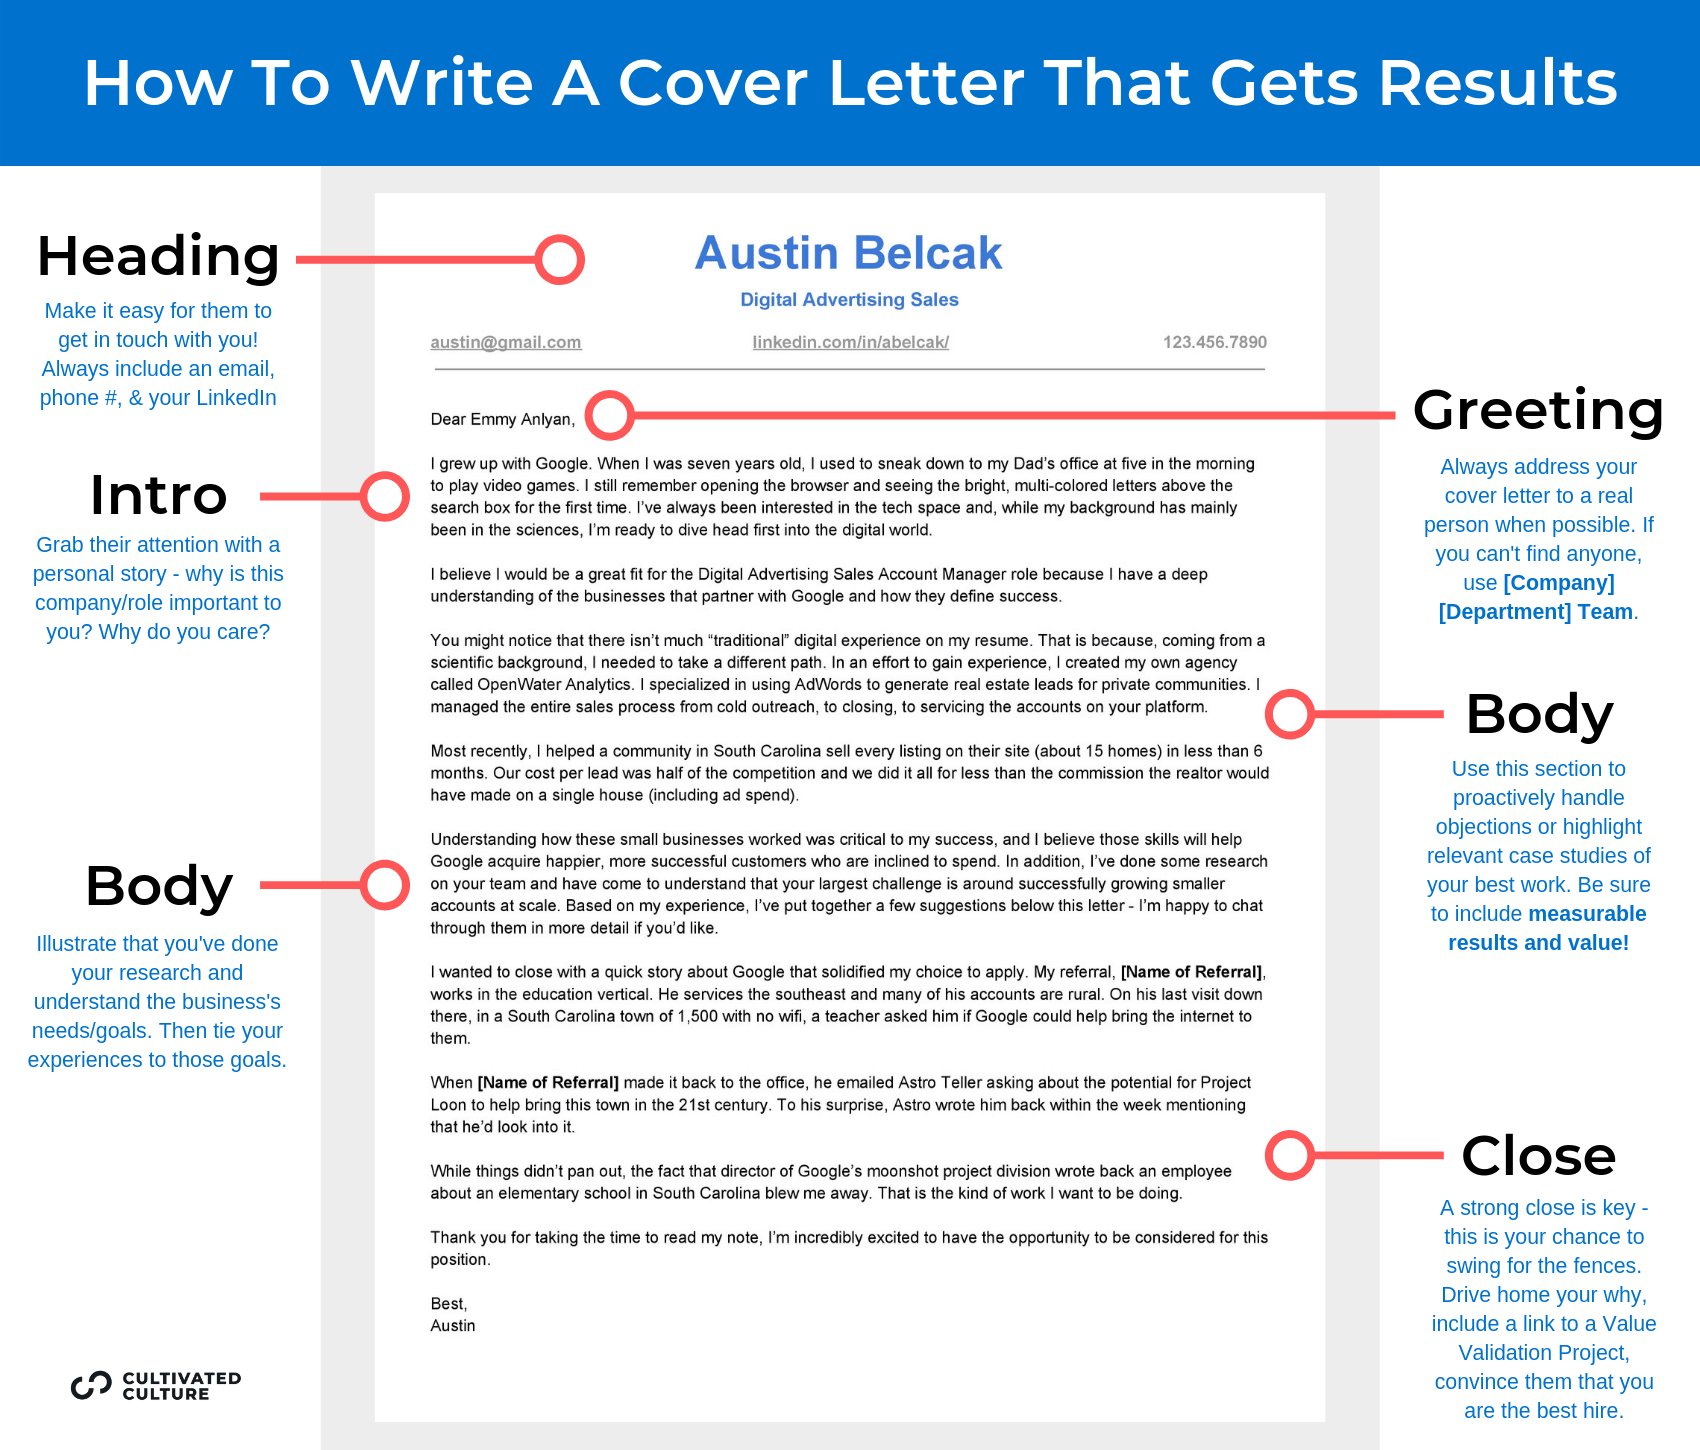 Product Development Cover Letter: How To Write An Amazing Cover Letter That Will Get You Hired